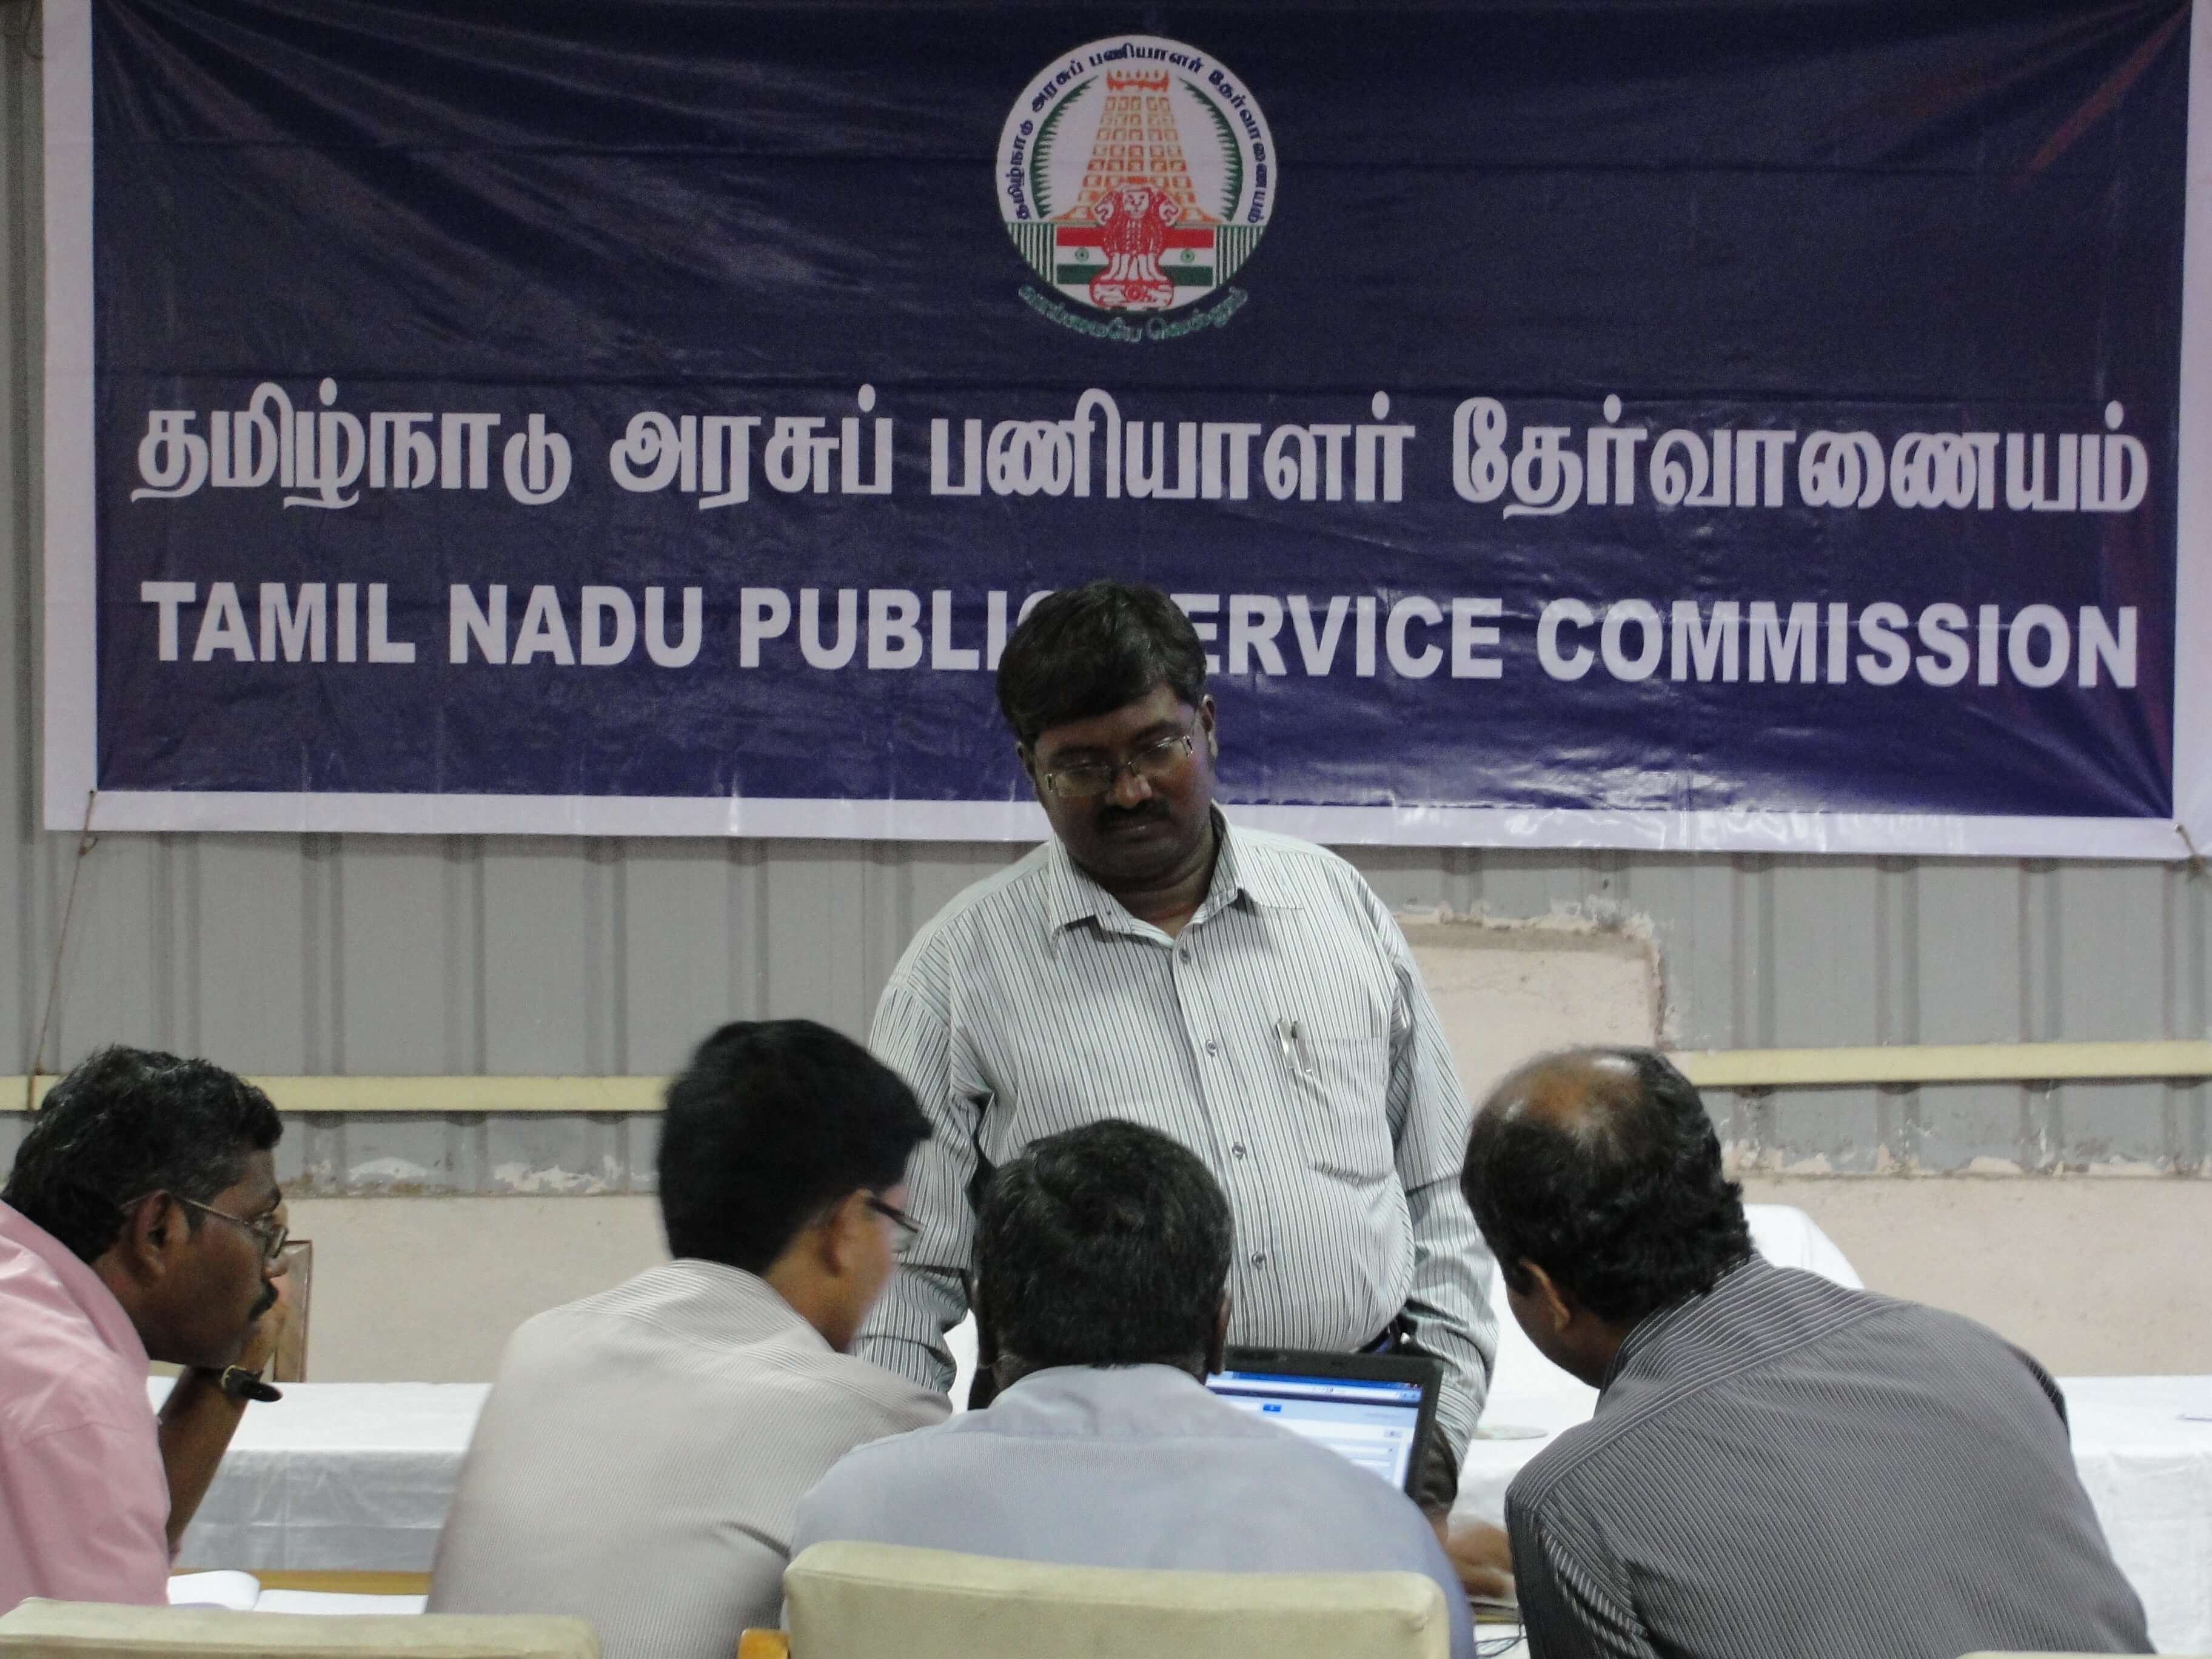 TAMIL NADU PUBLIC SERVICE RECRUITMENT - 139 OPENINGS